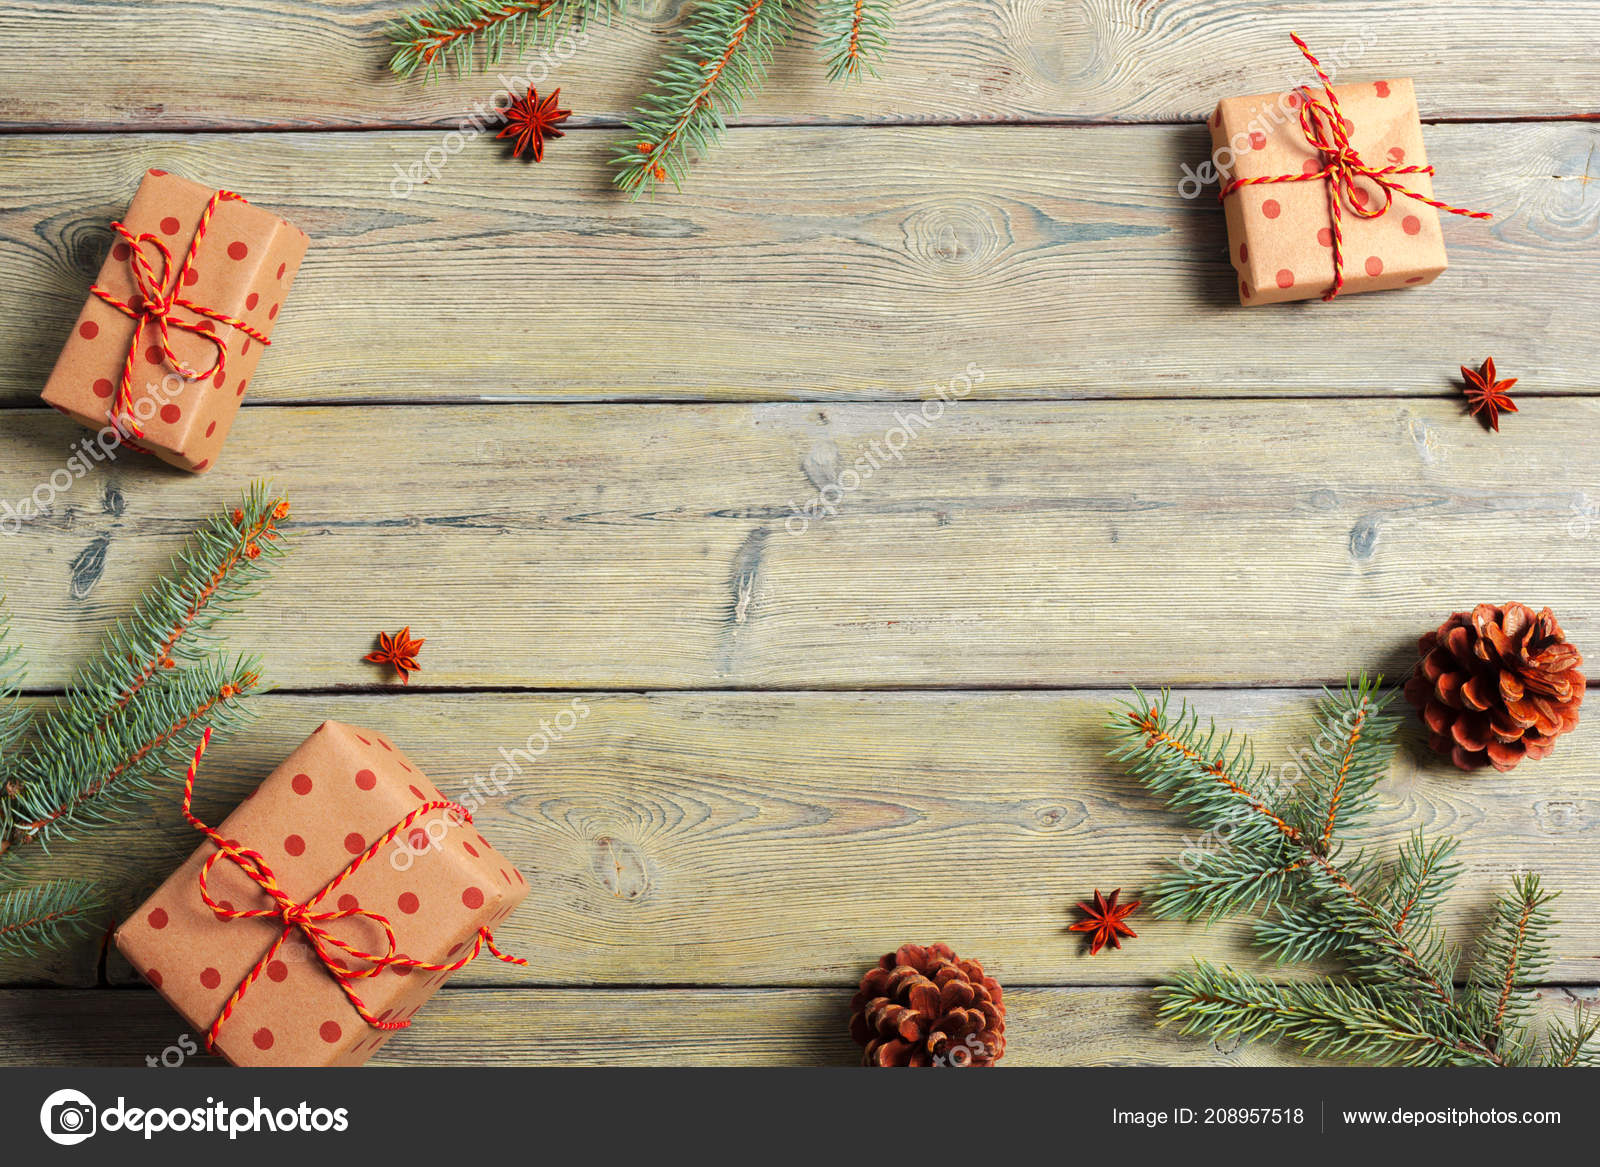 White Wooden Table Christmas Tree Decorations Top View Stock Photo Image By C Fotofabrika 208957518